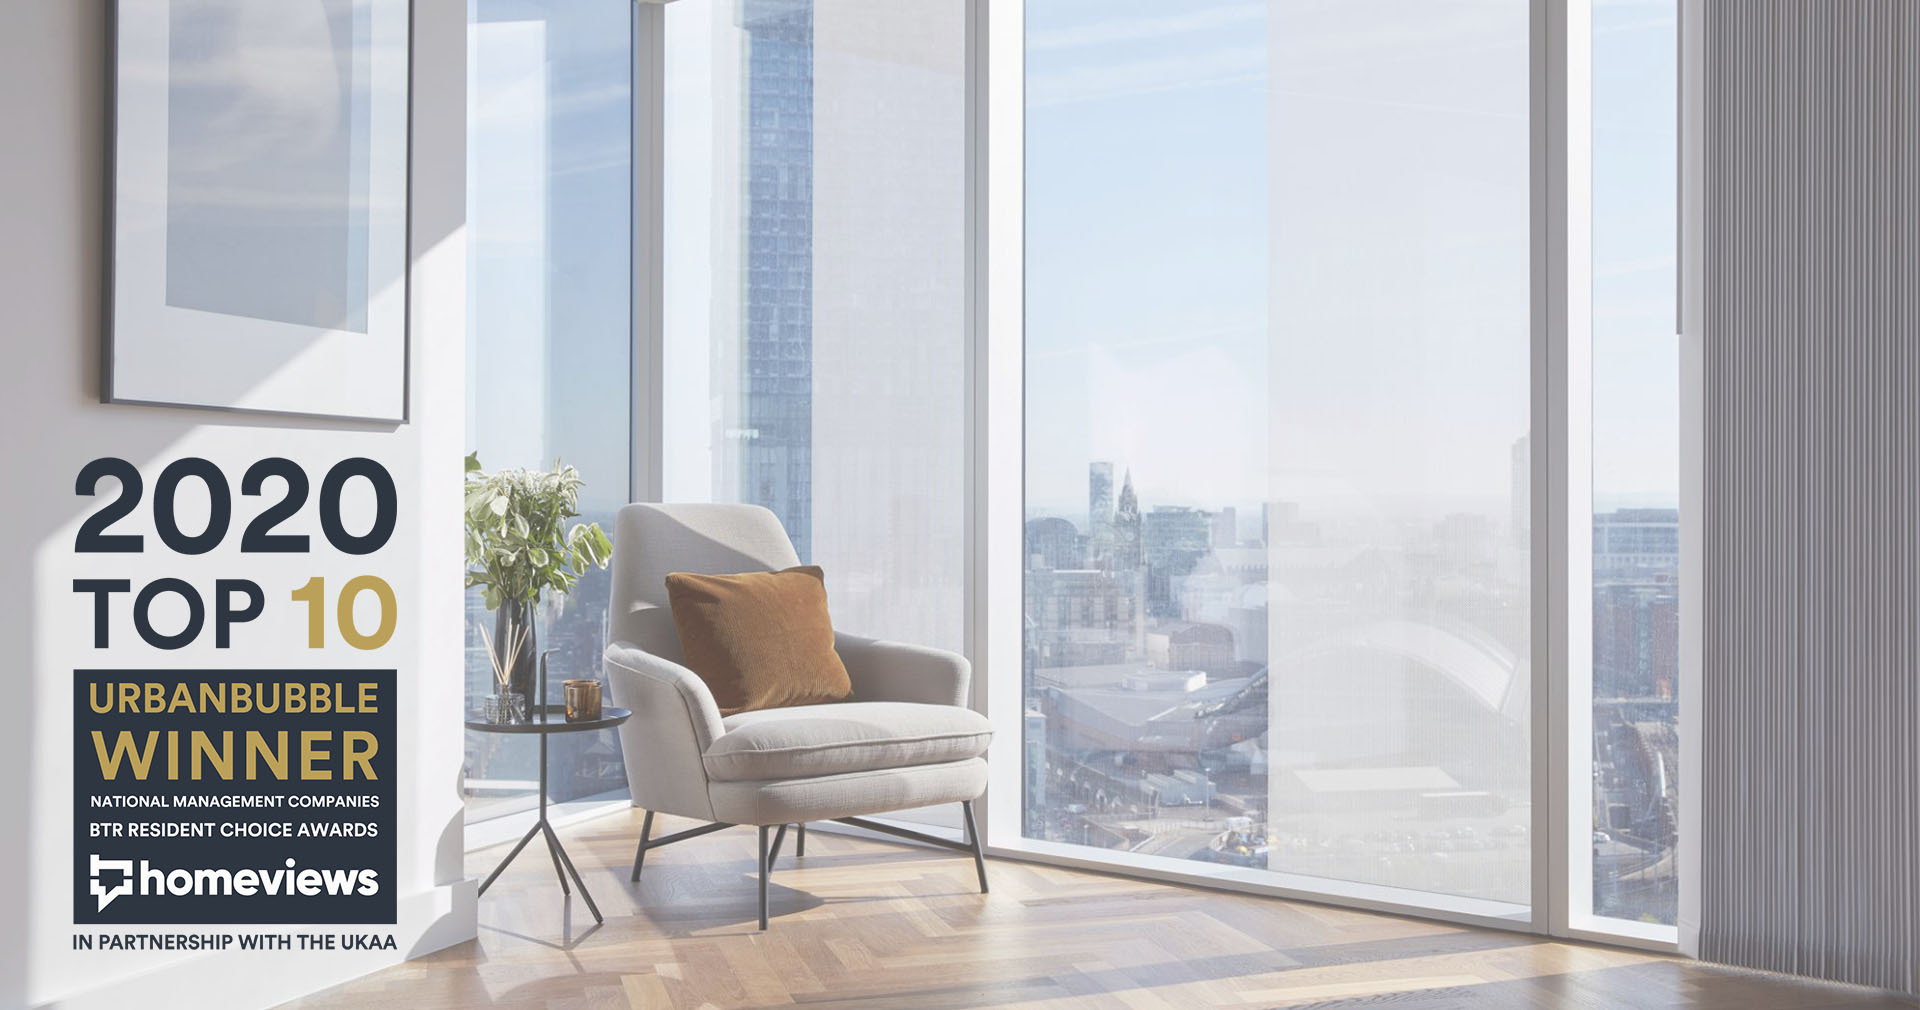 Flat interior by Urbanbubble - the top BTR property management company in 2020